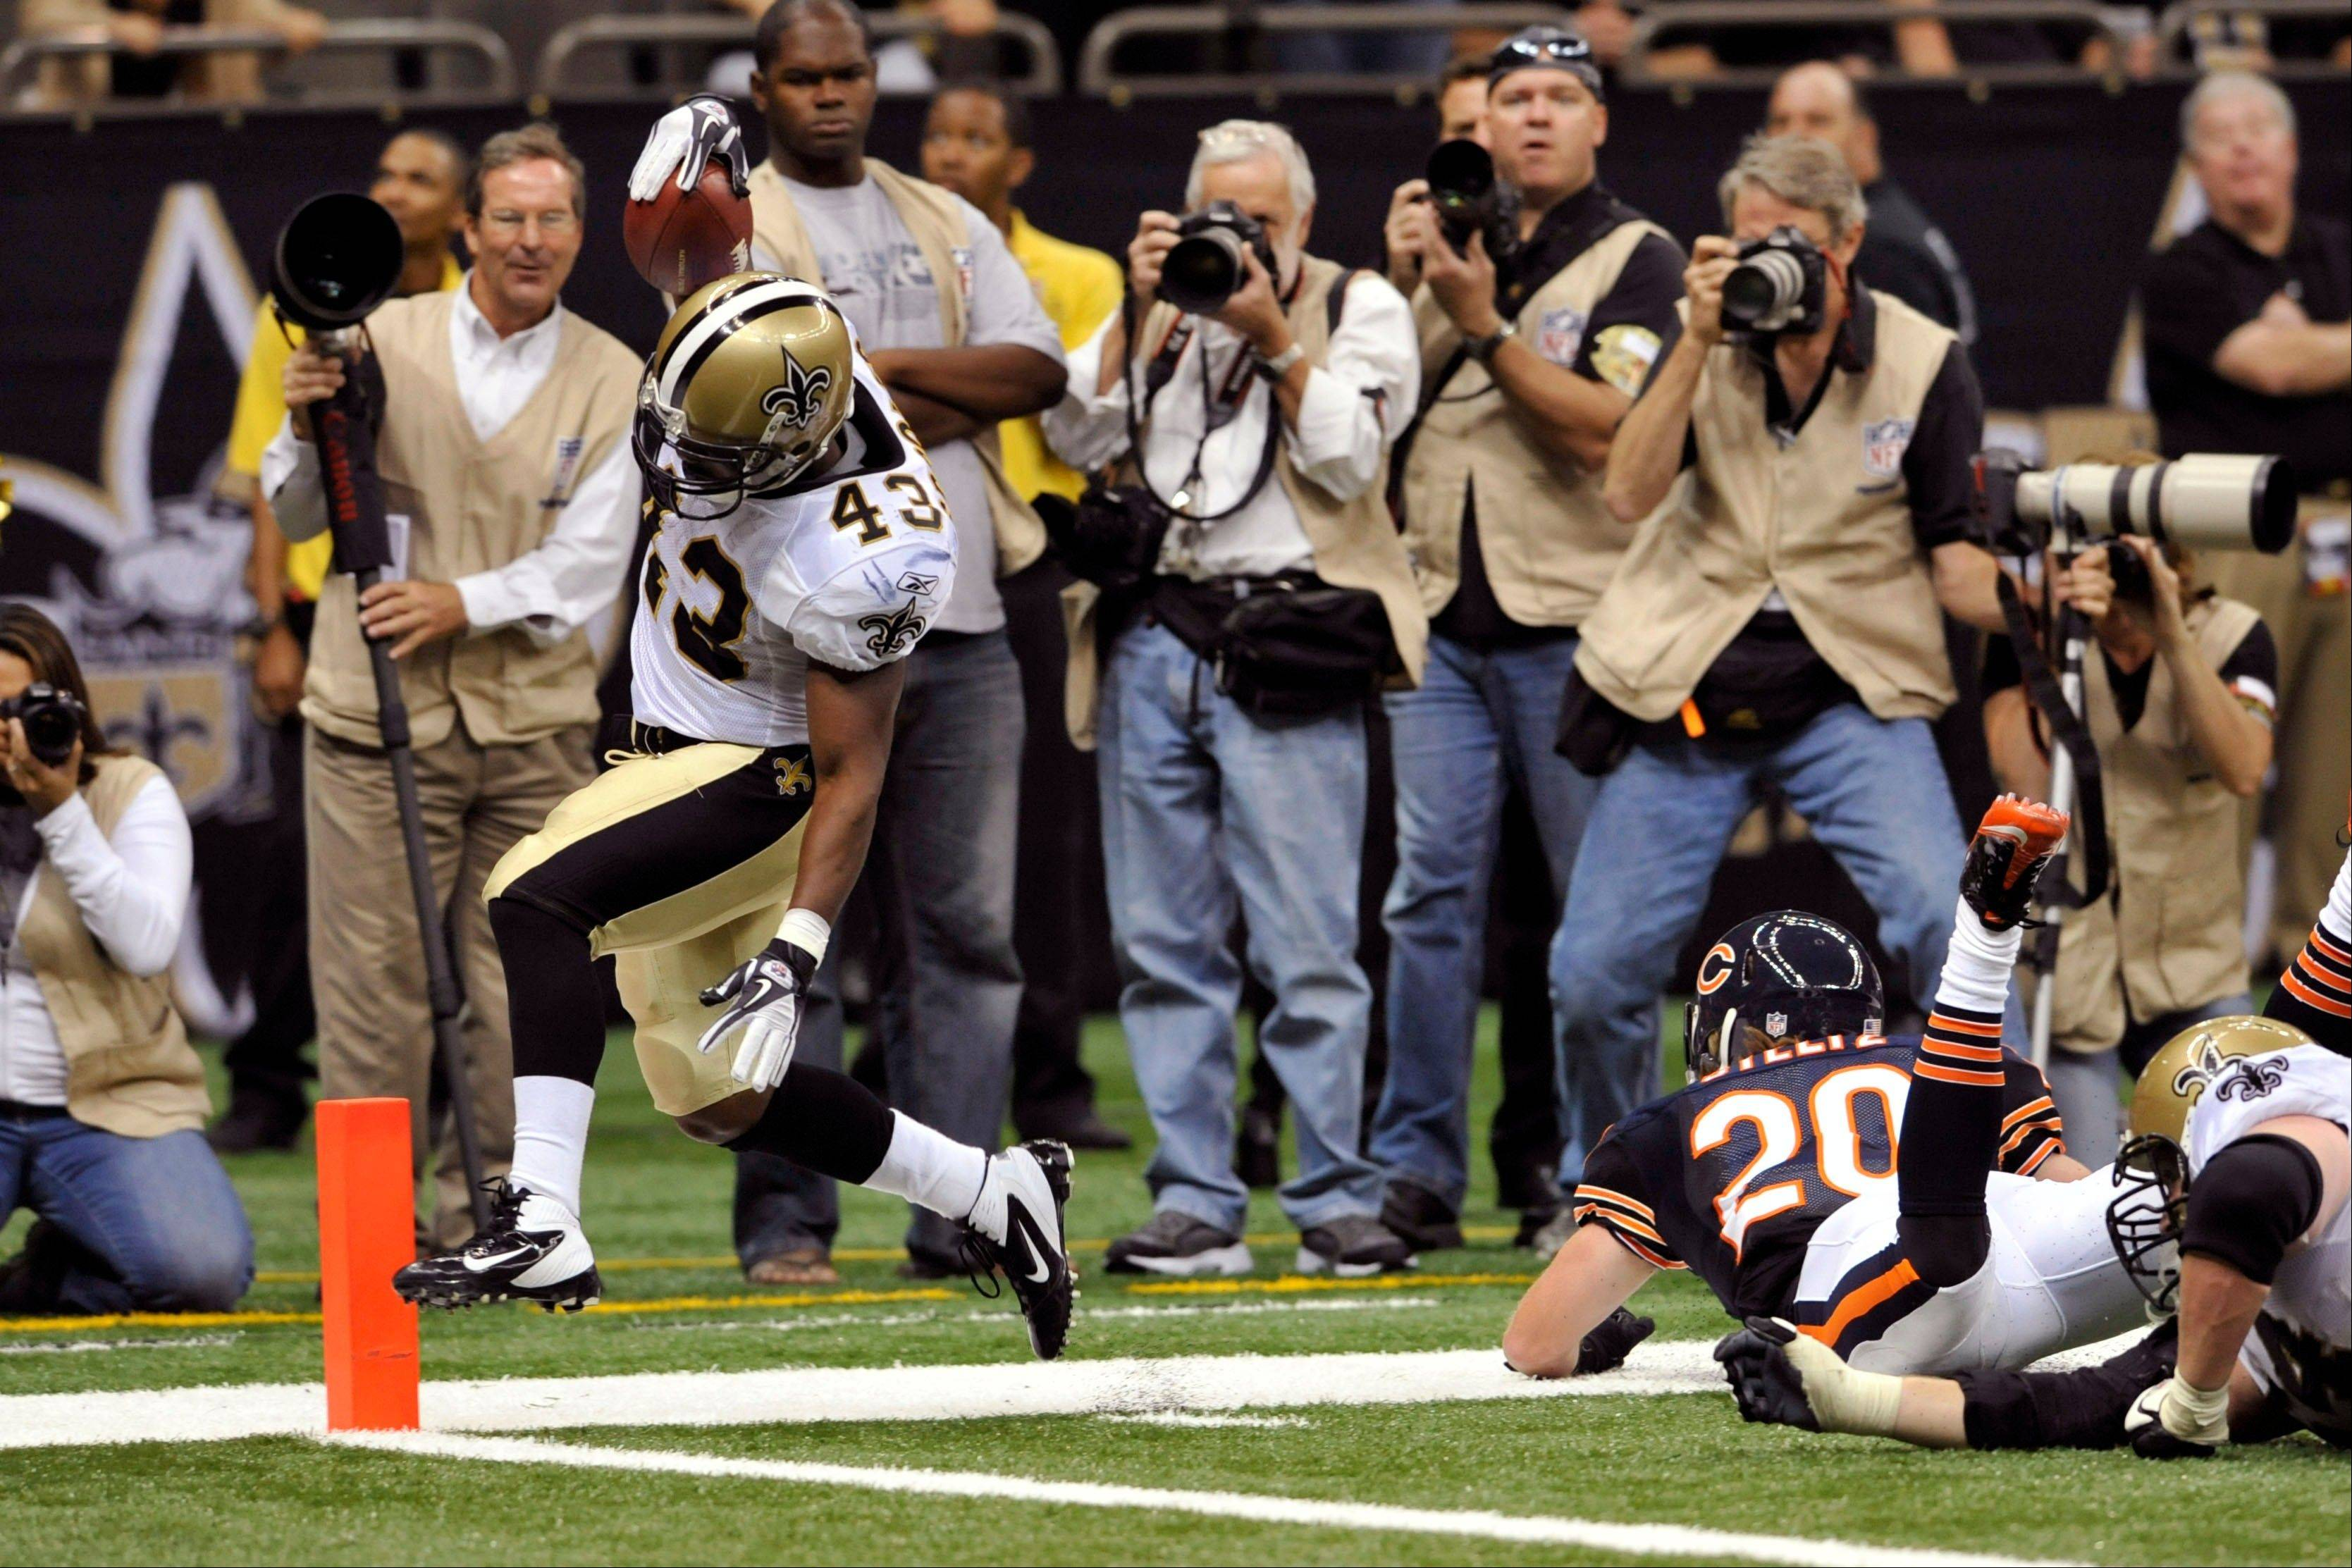 New Orleans Saints running back Darren Sproles (43) scores a touchdown past Chicago Bears defensive back Craig Steltz (20) during the fourth quarter an NFL football game at the Louisiana Superdome in New Orleans, Sunday, Sept. 18, 2011. (AP Photo/Bill Feig)